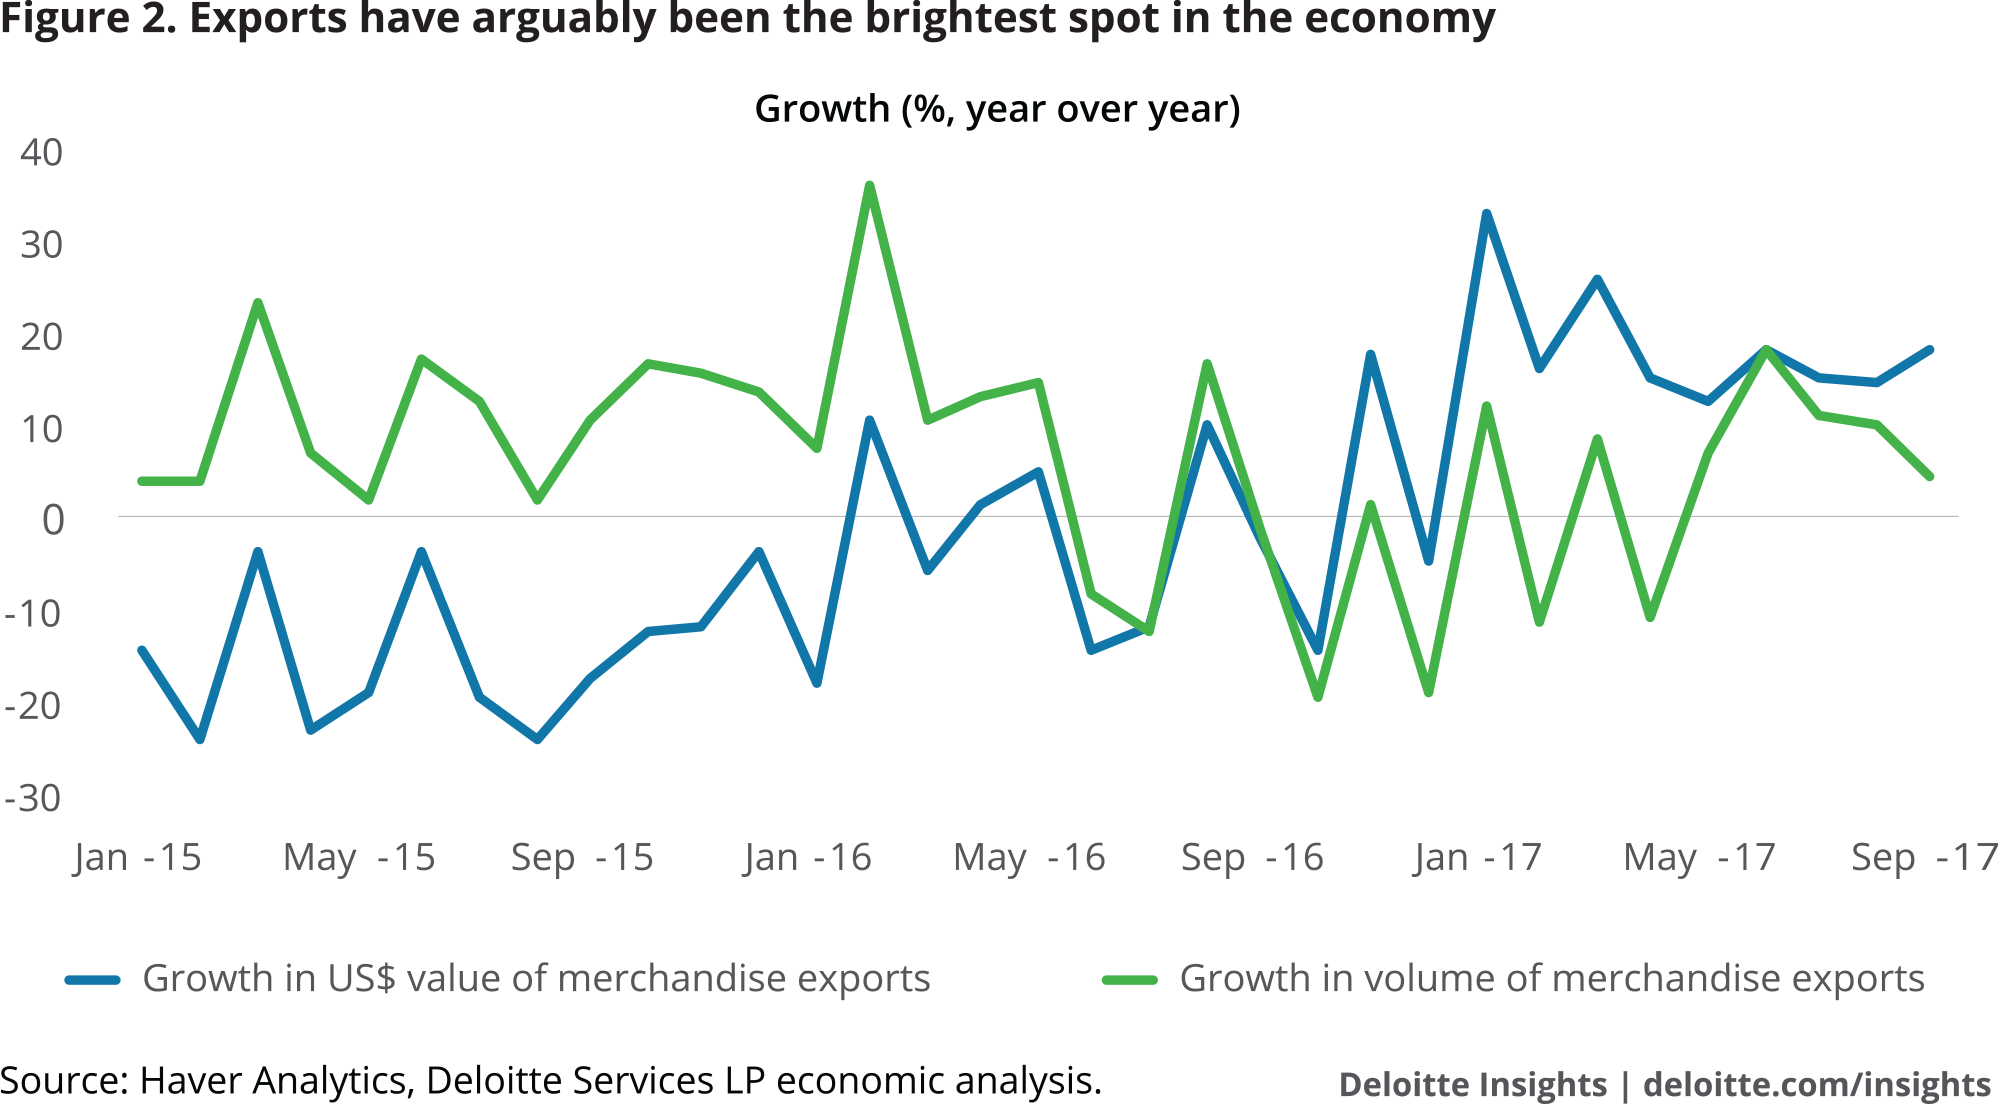 Exports have arguably been the brightest spot in the economy